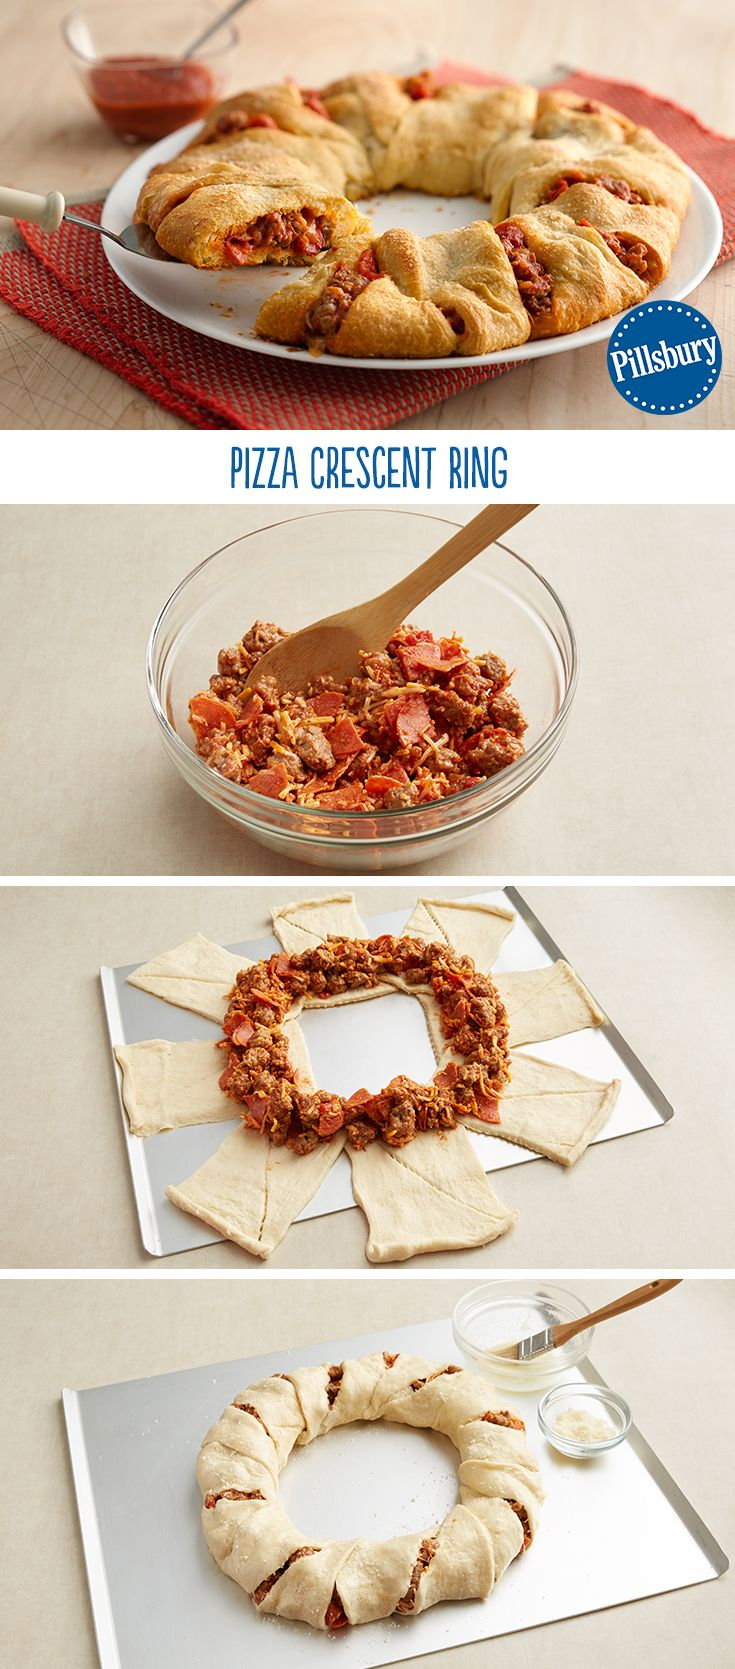 You'll hear a hoot here and a holler there from your kids after eating this fun recipe! Pizza night now has an easy twist with a crescent ring. Mix pepperoni, sausage, cheese and pizza sauce and fill your crescents. It's guaranteed to be a tried-and-true one for your weeknight dinner.